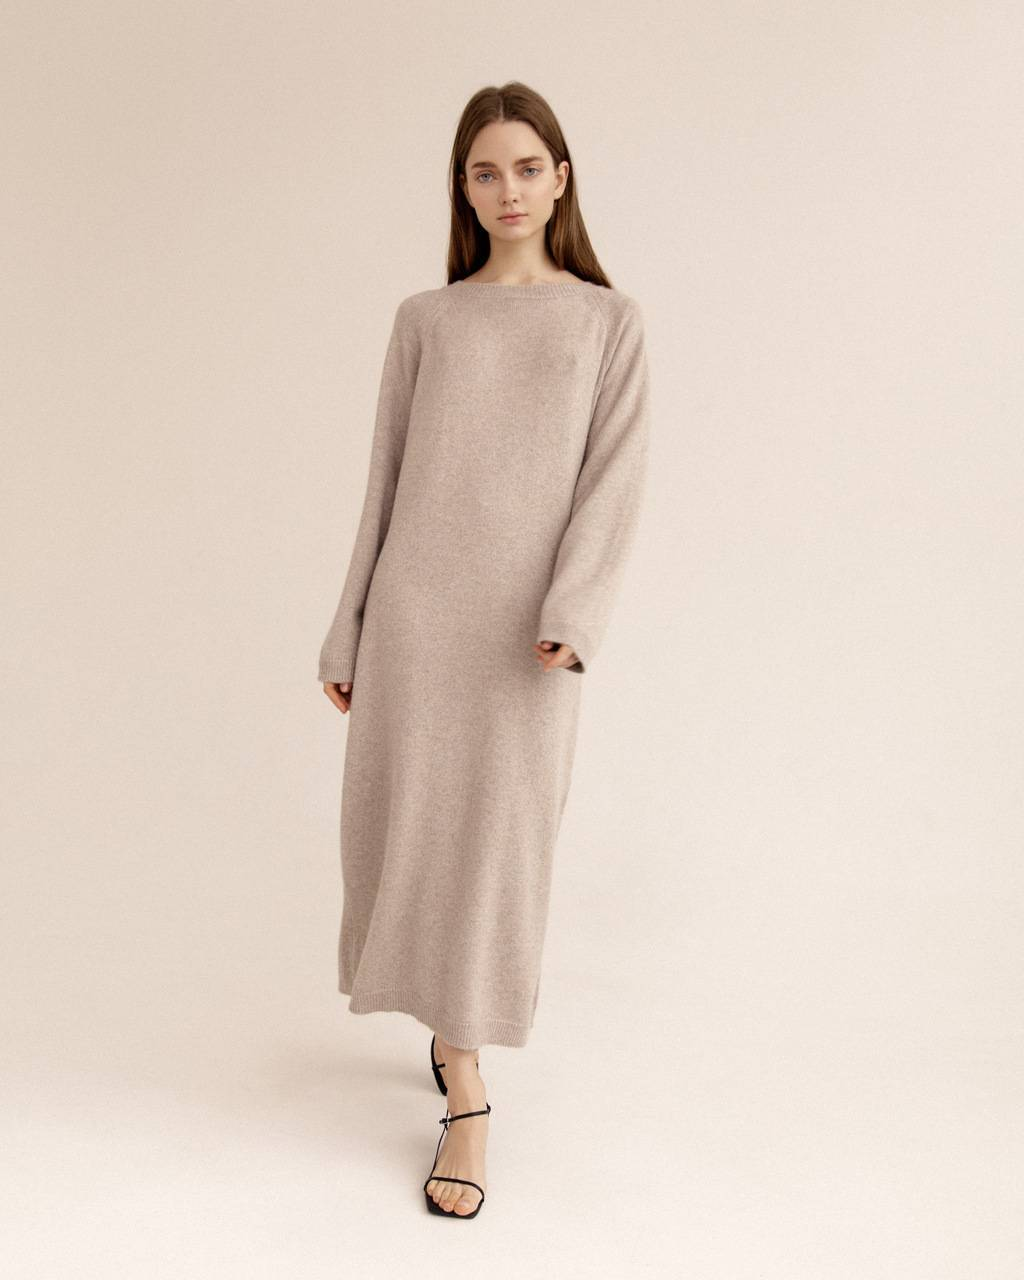 Oversize extra soft 100% cashmere dress- 485 USD / 399 EUR